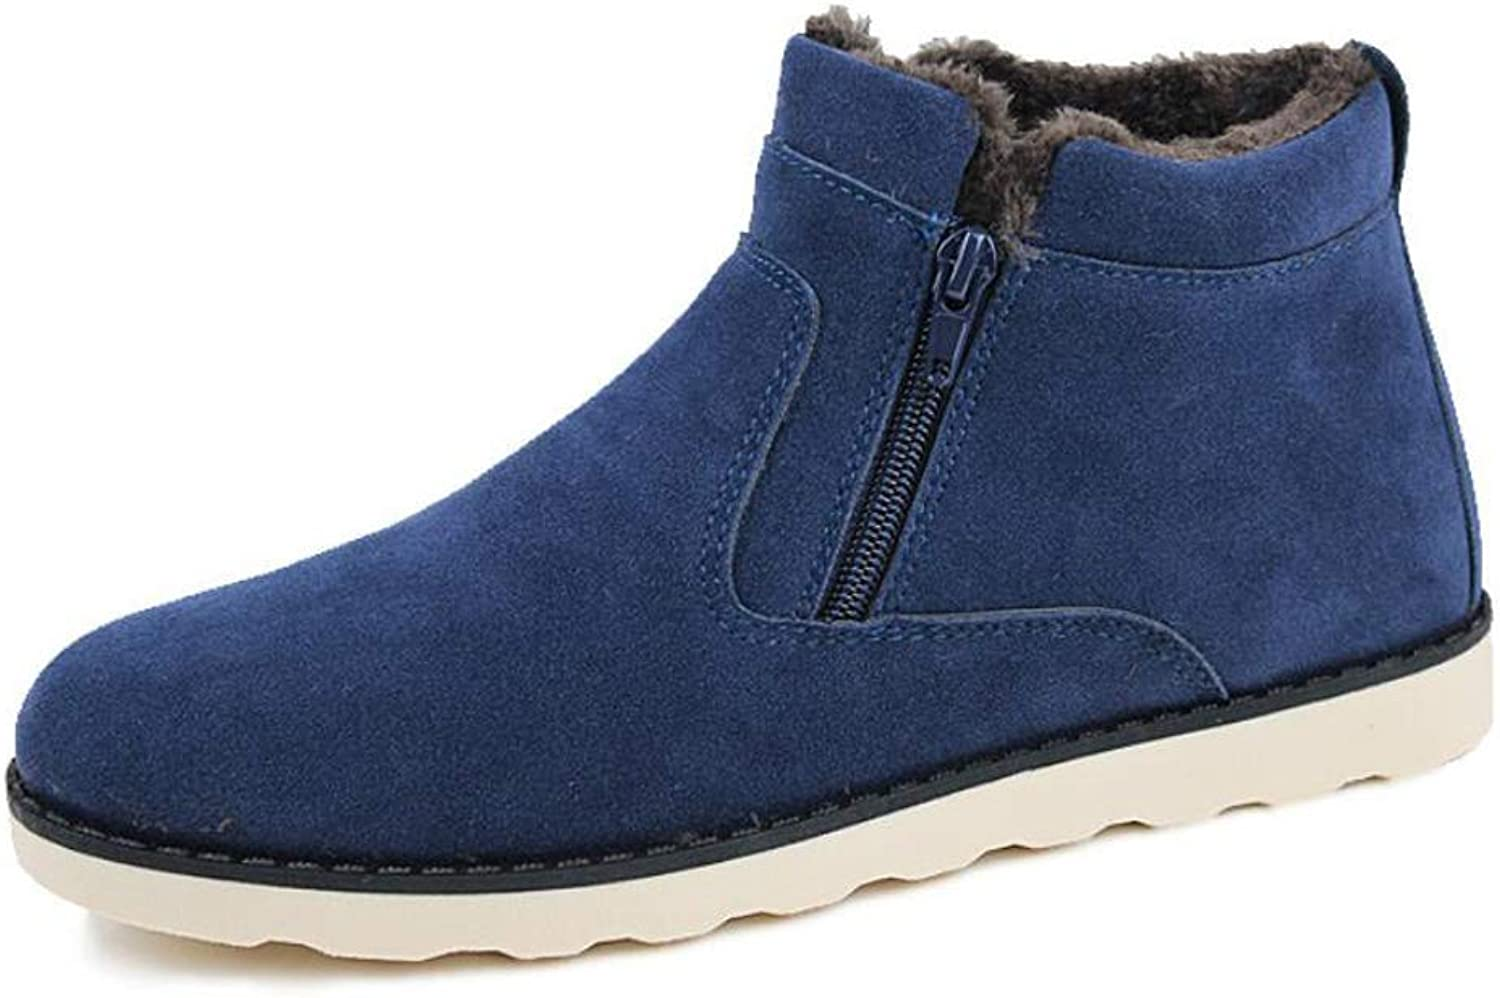 Zxcvb Outdoor High Help Plus Velvet Cotton shoes Snow Boots Men's Warm Casual Men's shoes Yellow bluee Black